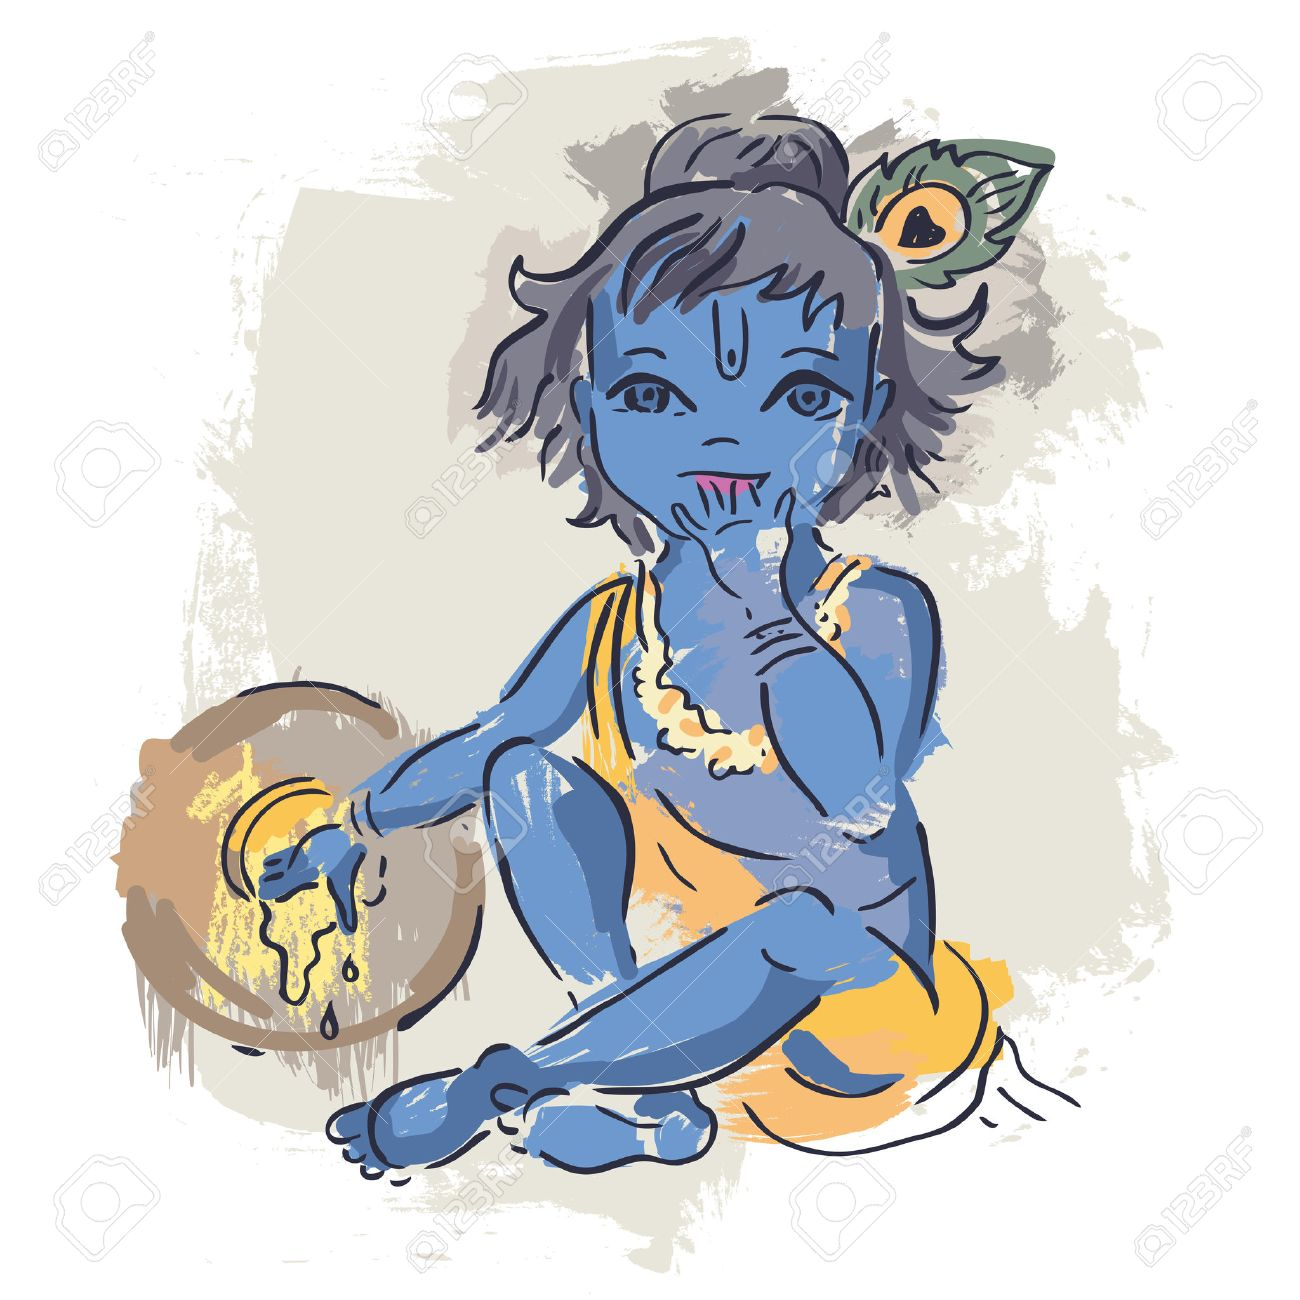 Latest krishna Wall Decor Decal Art Photo Gallery for free download